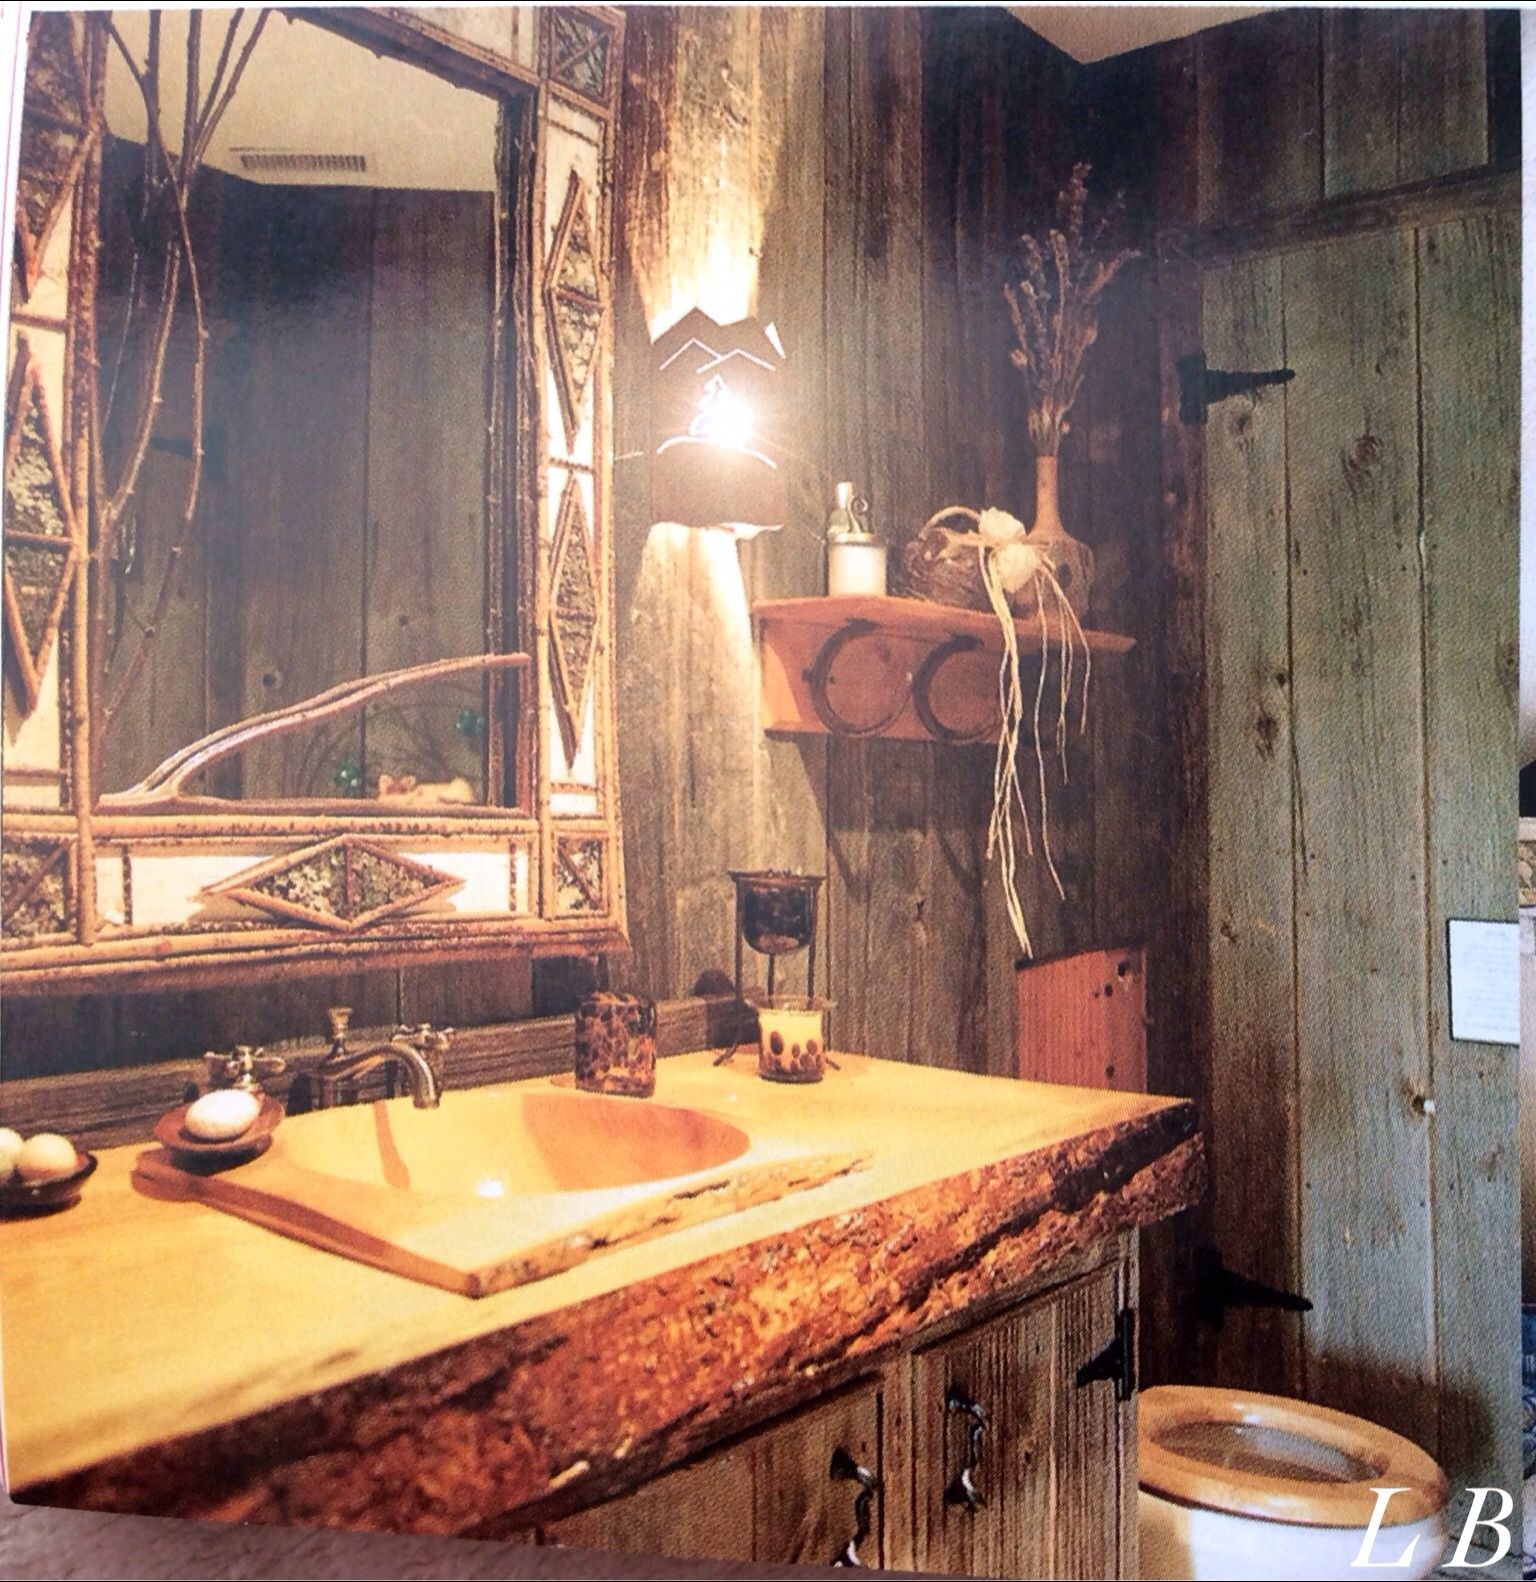 Vanity Counter Made From The Centre Part Of A One Piece Planed Log The Sink Is A Dropped In Wooden Salad Bowl Wooden Salad Bowl Unique Mirrors Vanity Counter Bathroom sink countertop one piece